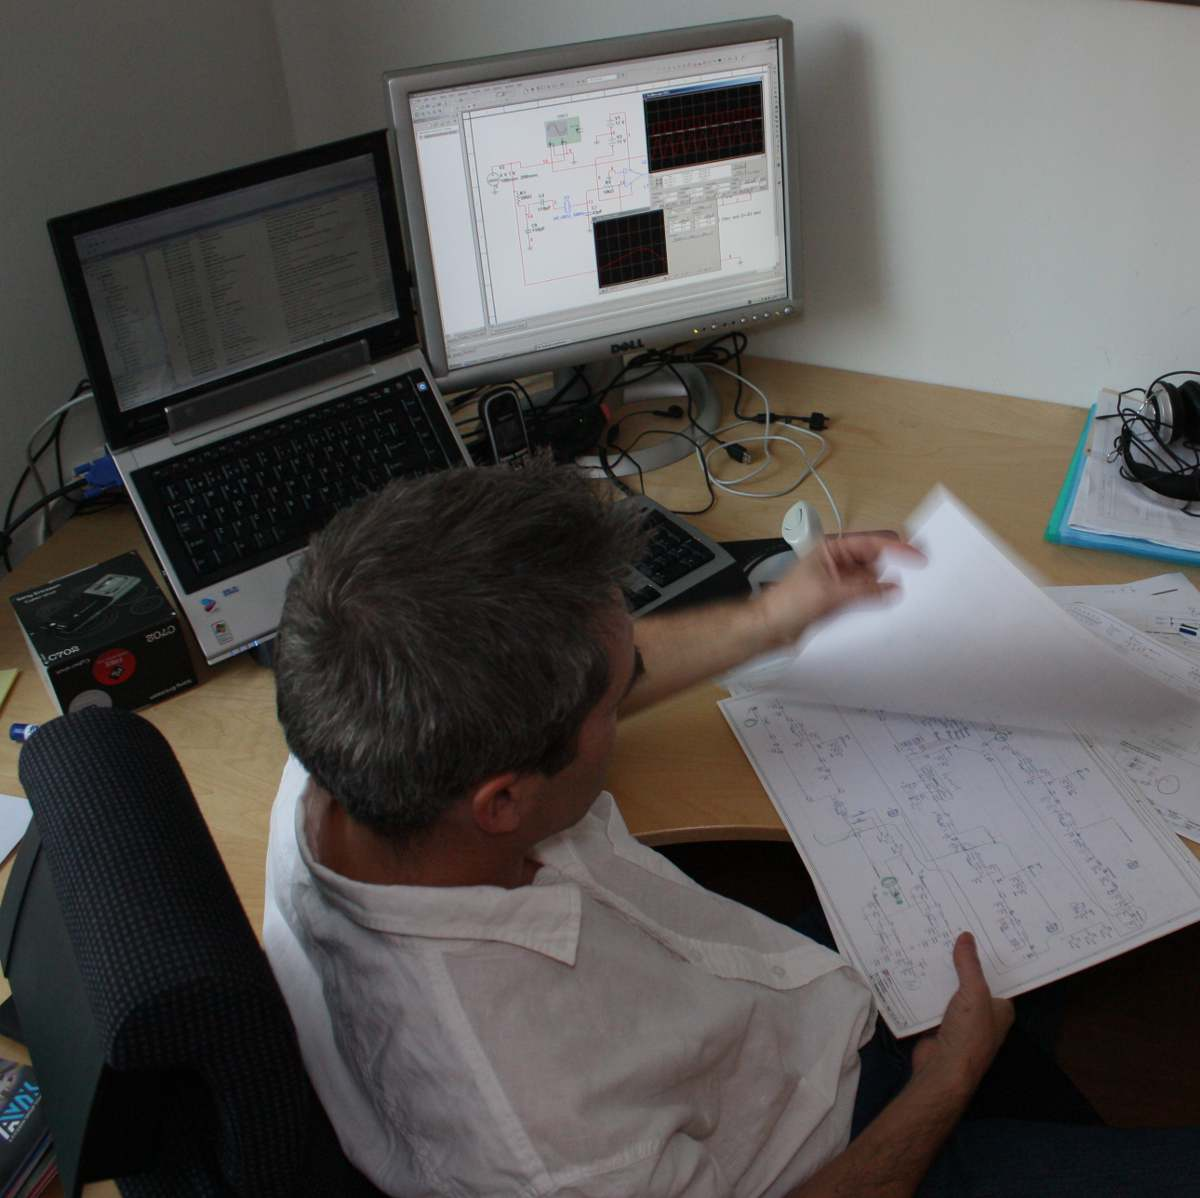 Svein Reviewing Schematic Drawing